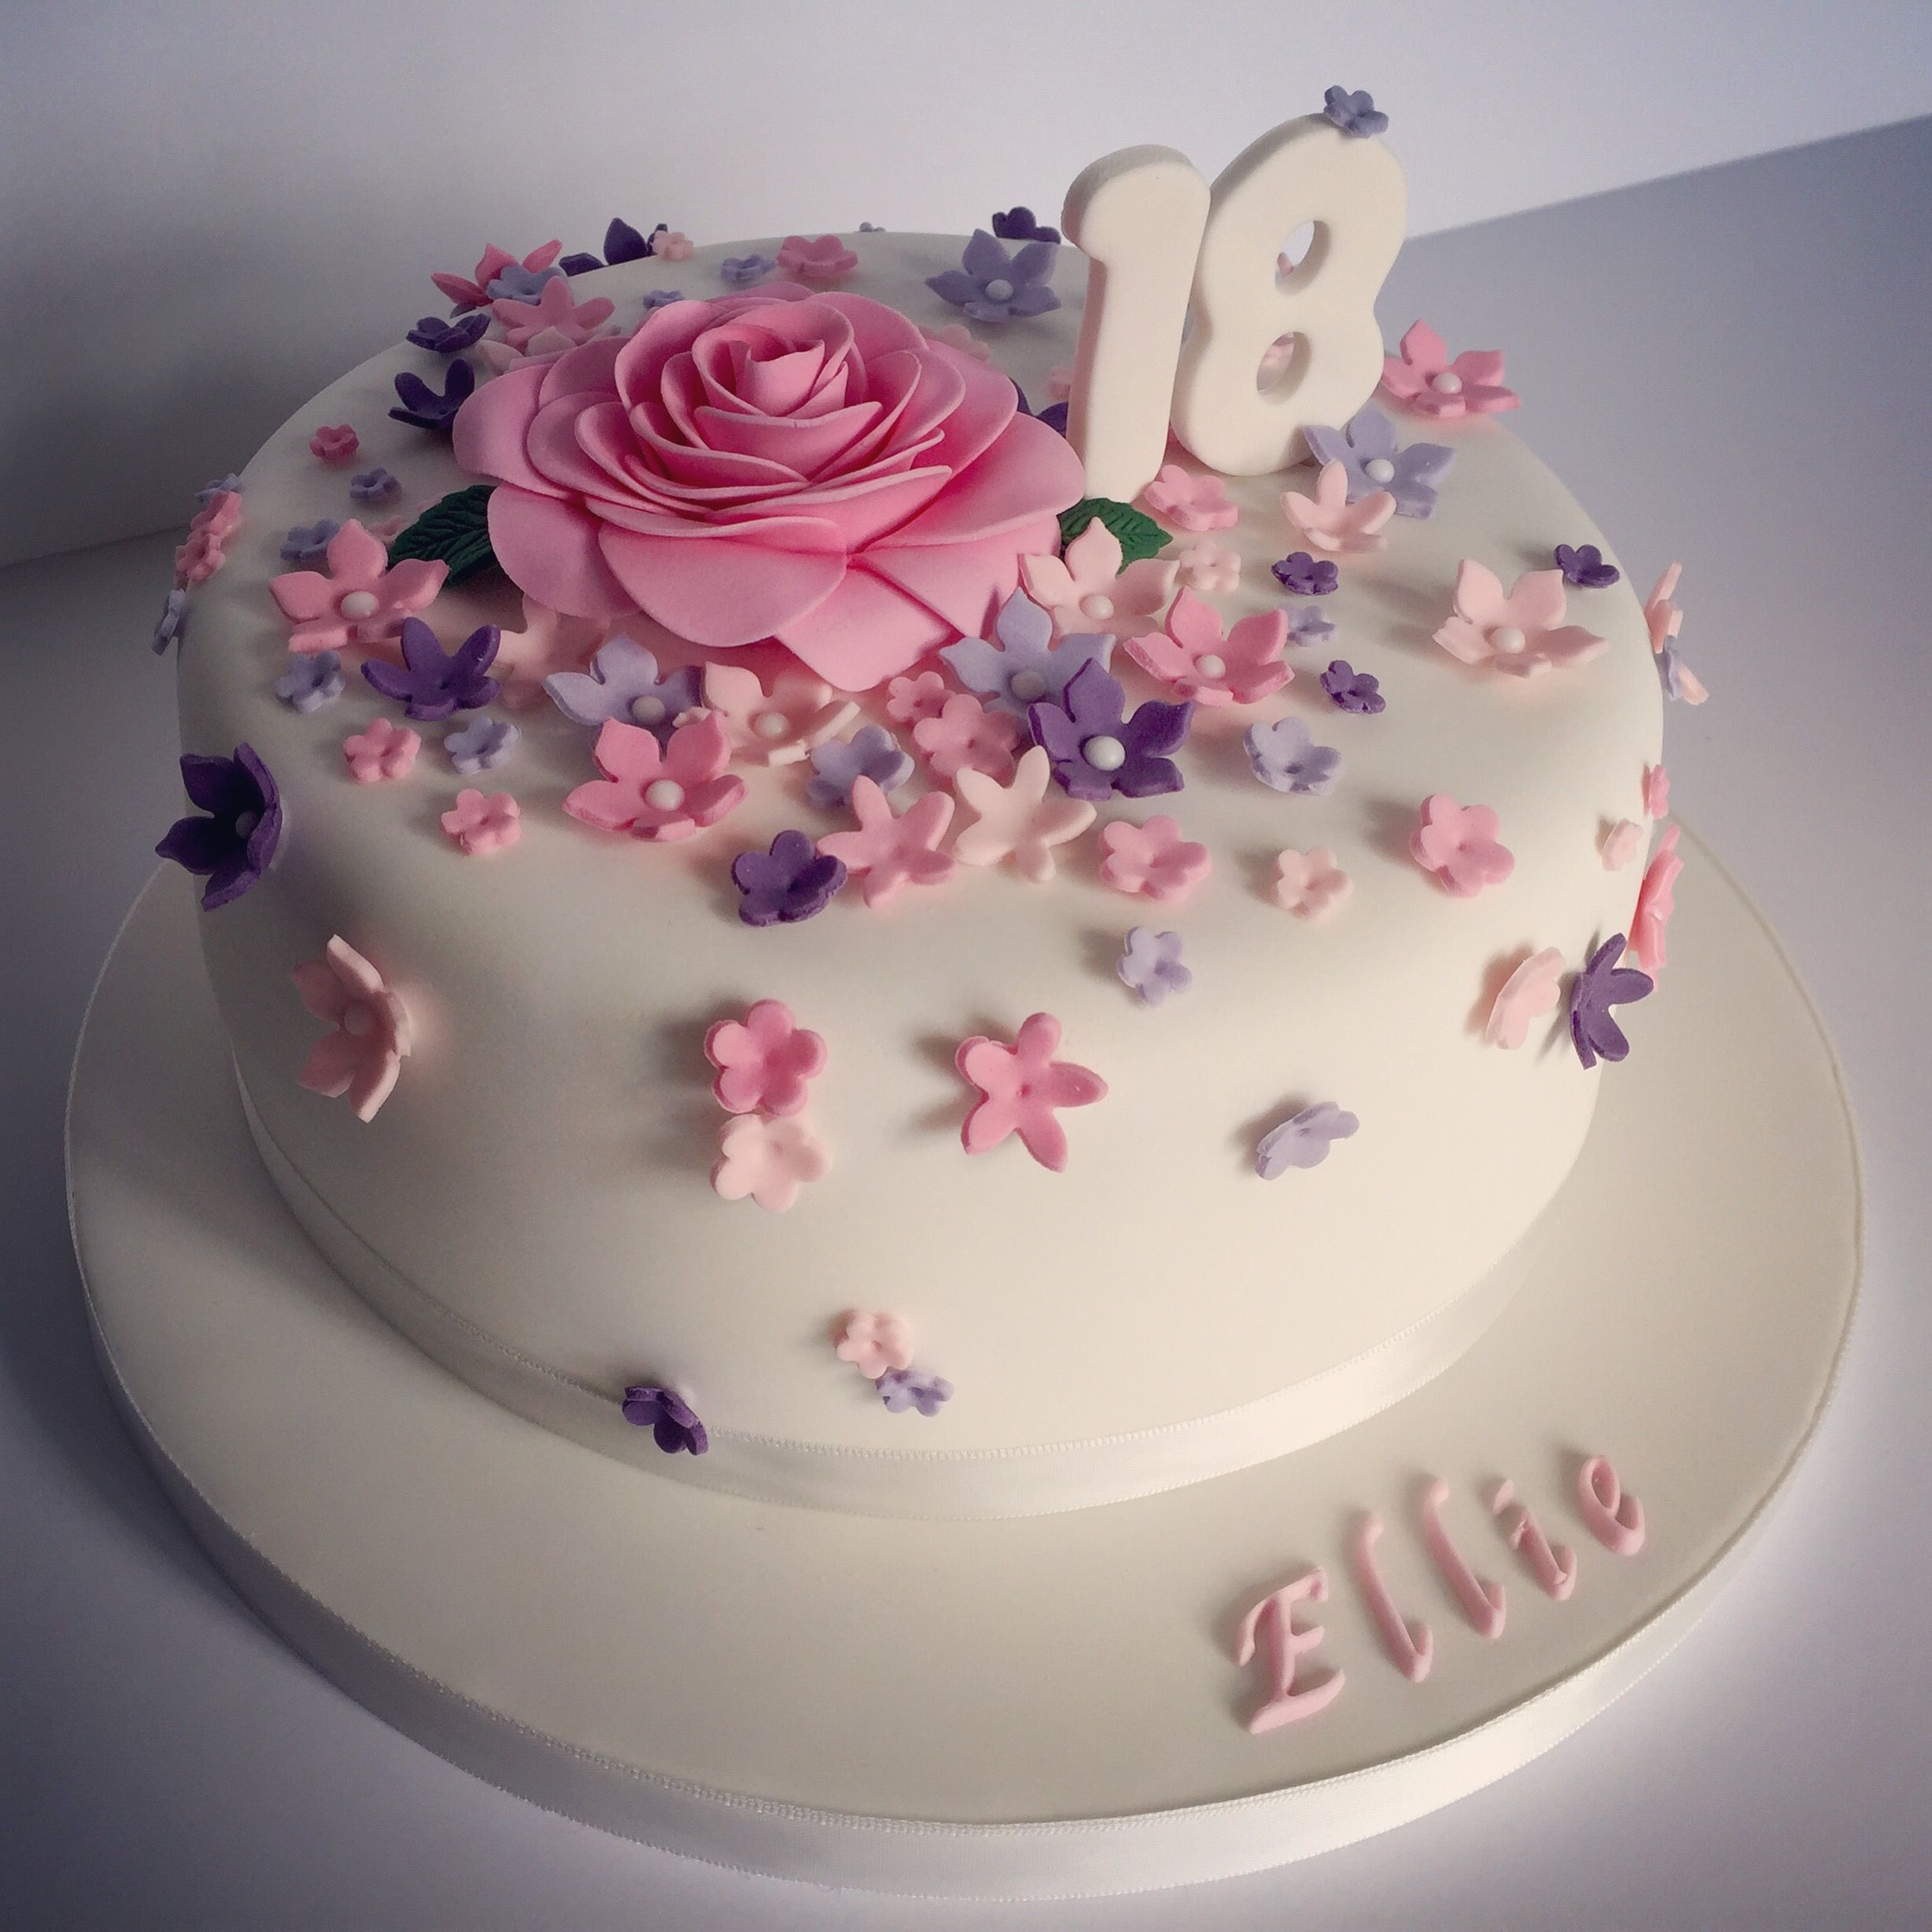 18th Birthday Cake Ideas Best Of Pretty 18th Birthday Cake For